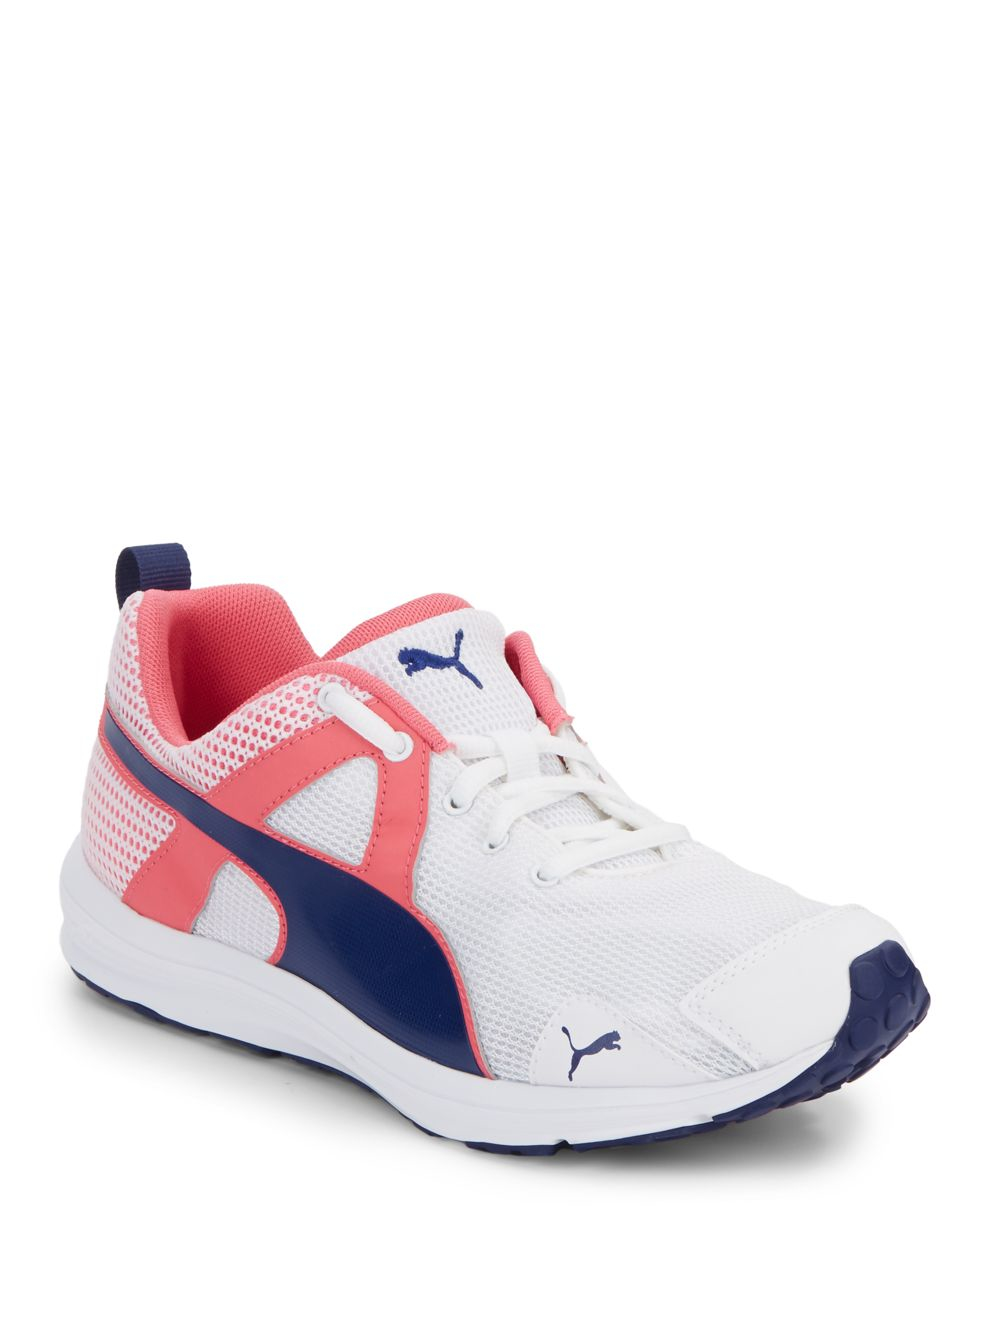 size 40 e67a0 10ef3 Puma Evader Geo Sneakers in Pink - Lyst